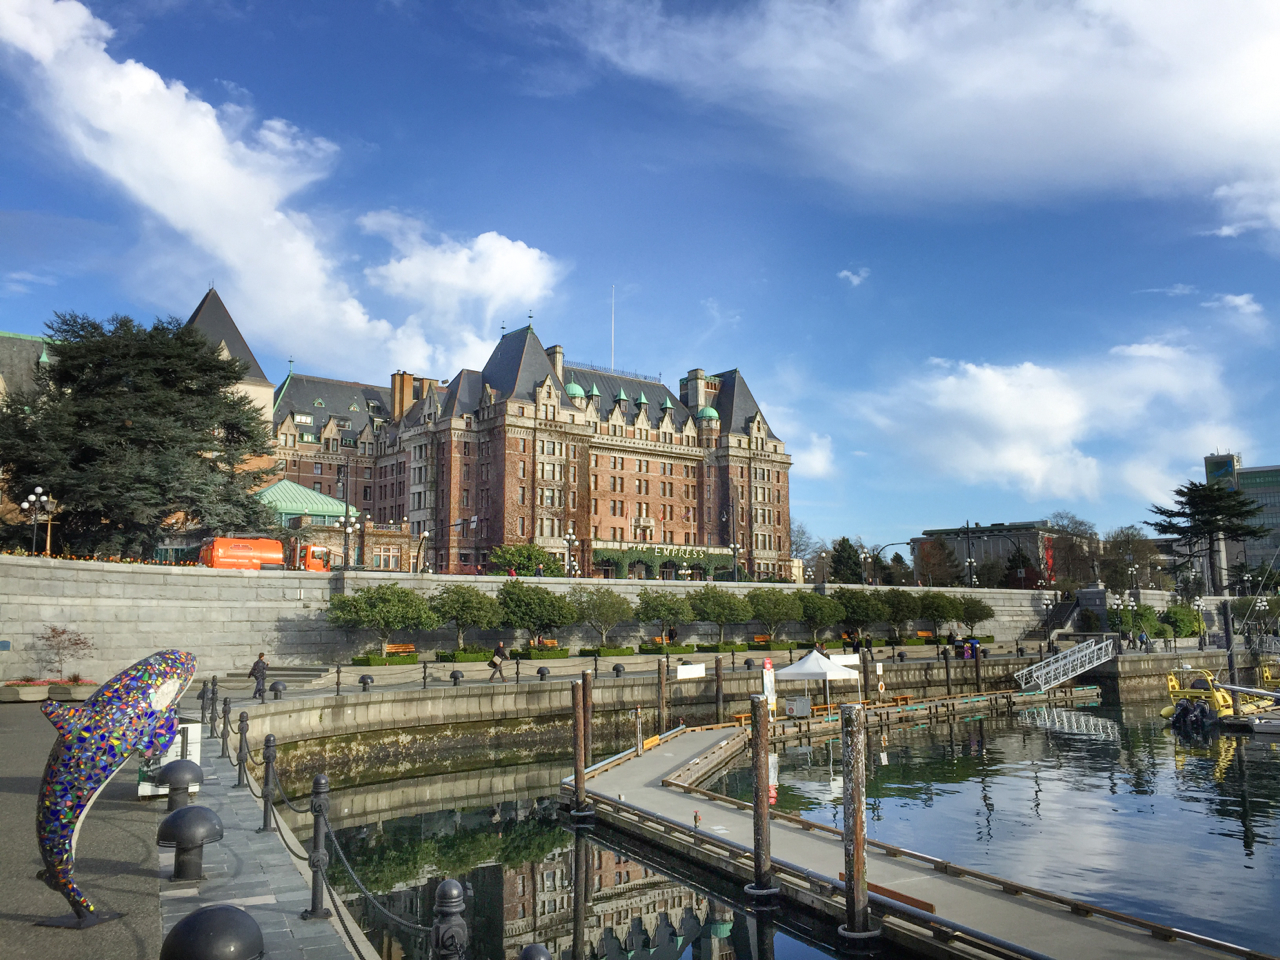 View of the Empress Hotel